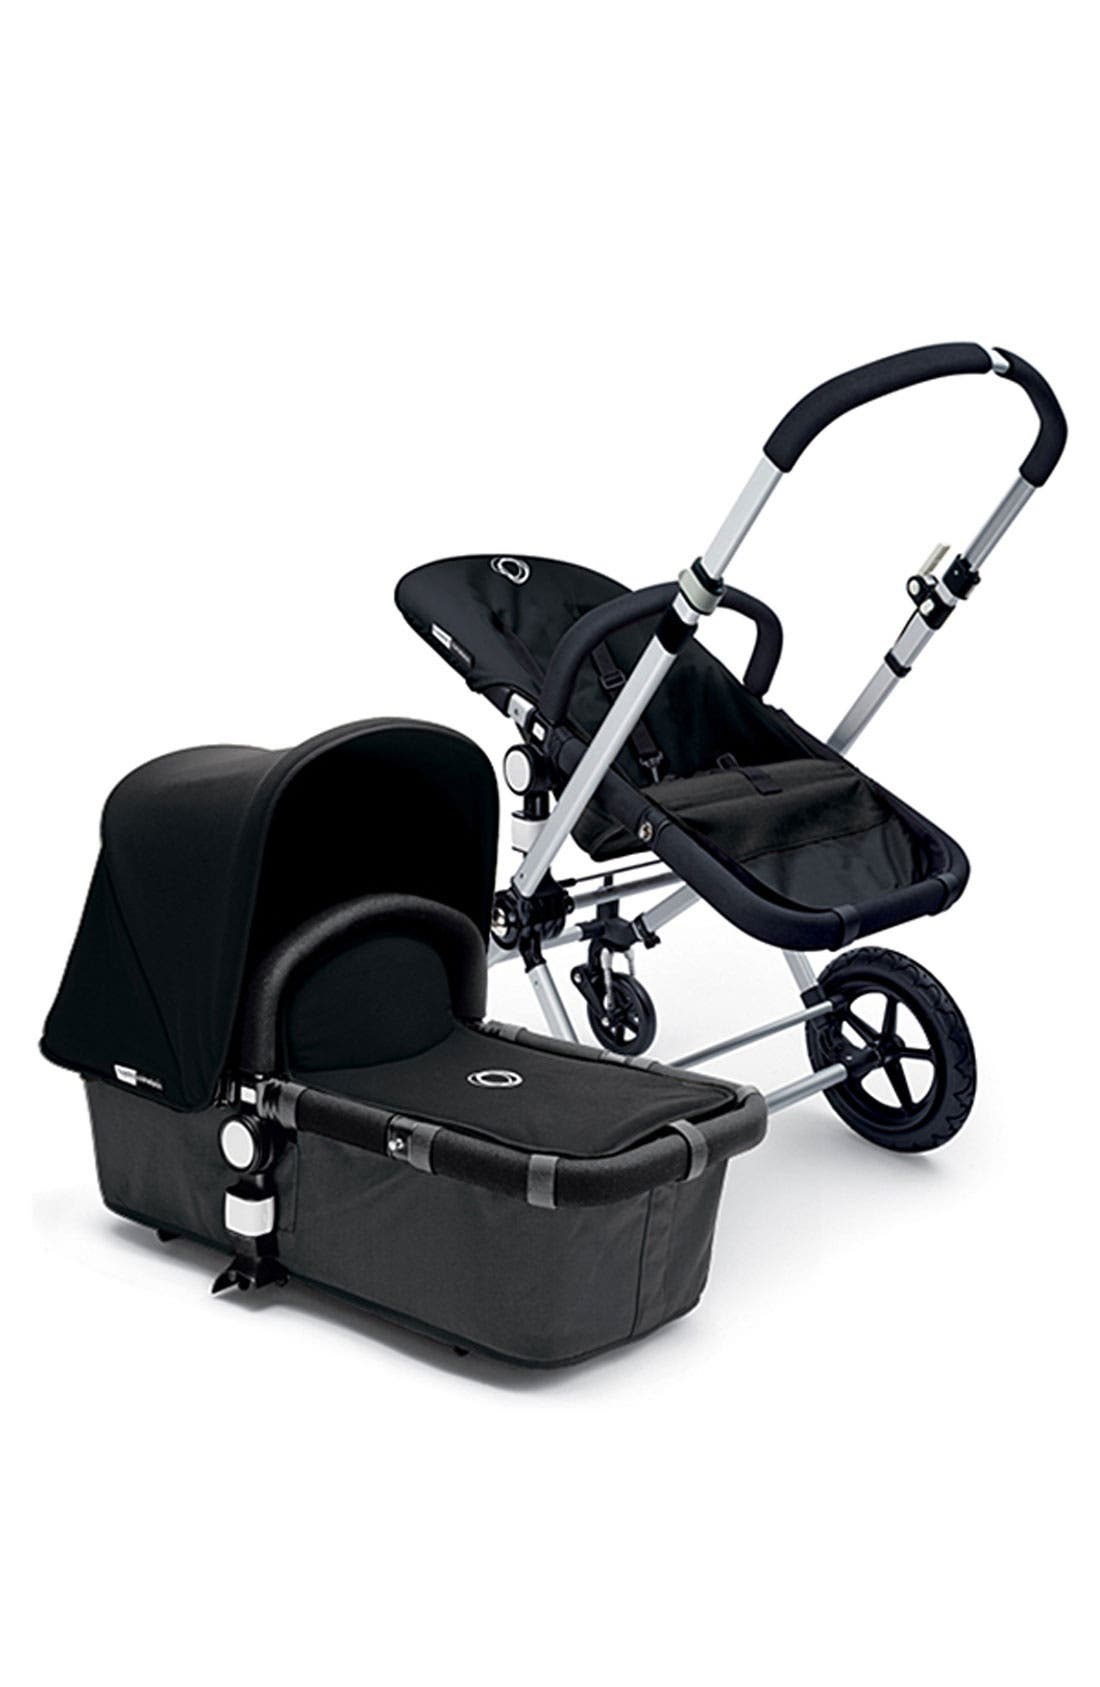 Alternate Image 1 Selected - Bugaboo 'Cameleon' Stroller (Shown with Dark Grey Canvas)